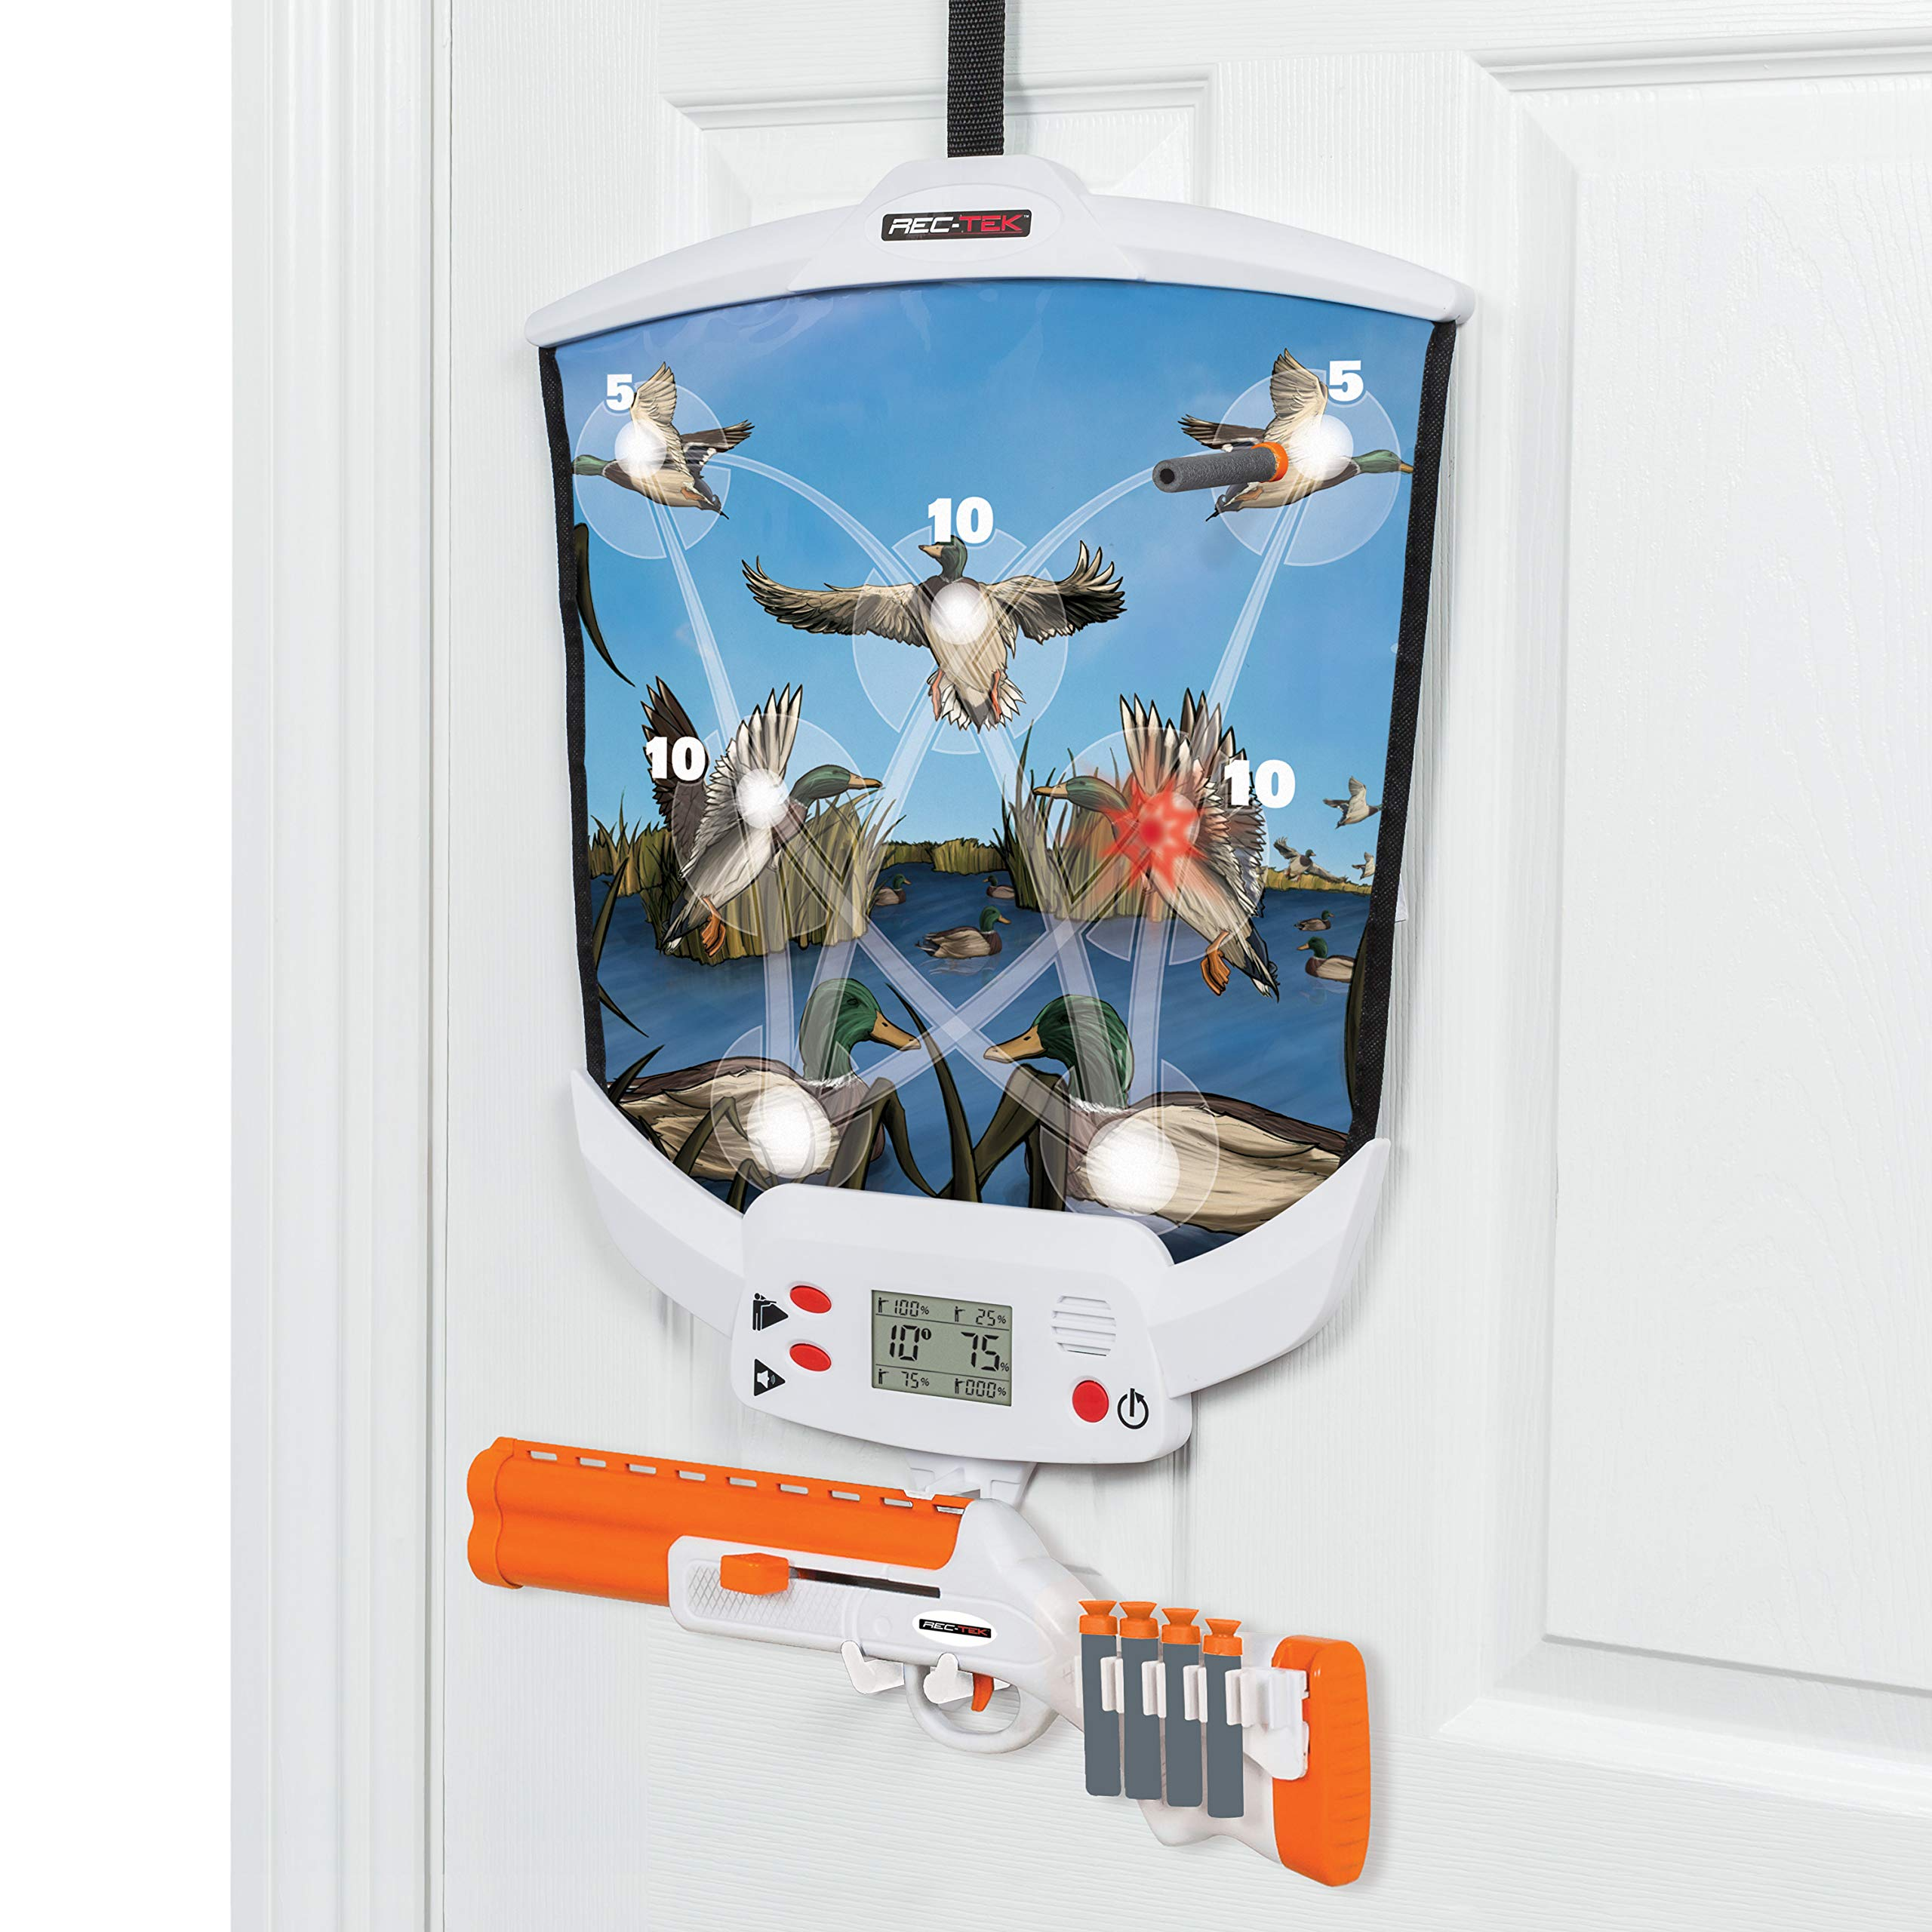 Rec-Tek Over The Door Duck Hunting Game for Kids - Features Easy Assembly and Easily Adjustable Height - Complete with all Accessories by Rec-Tek